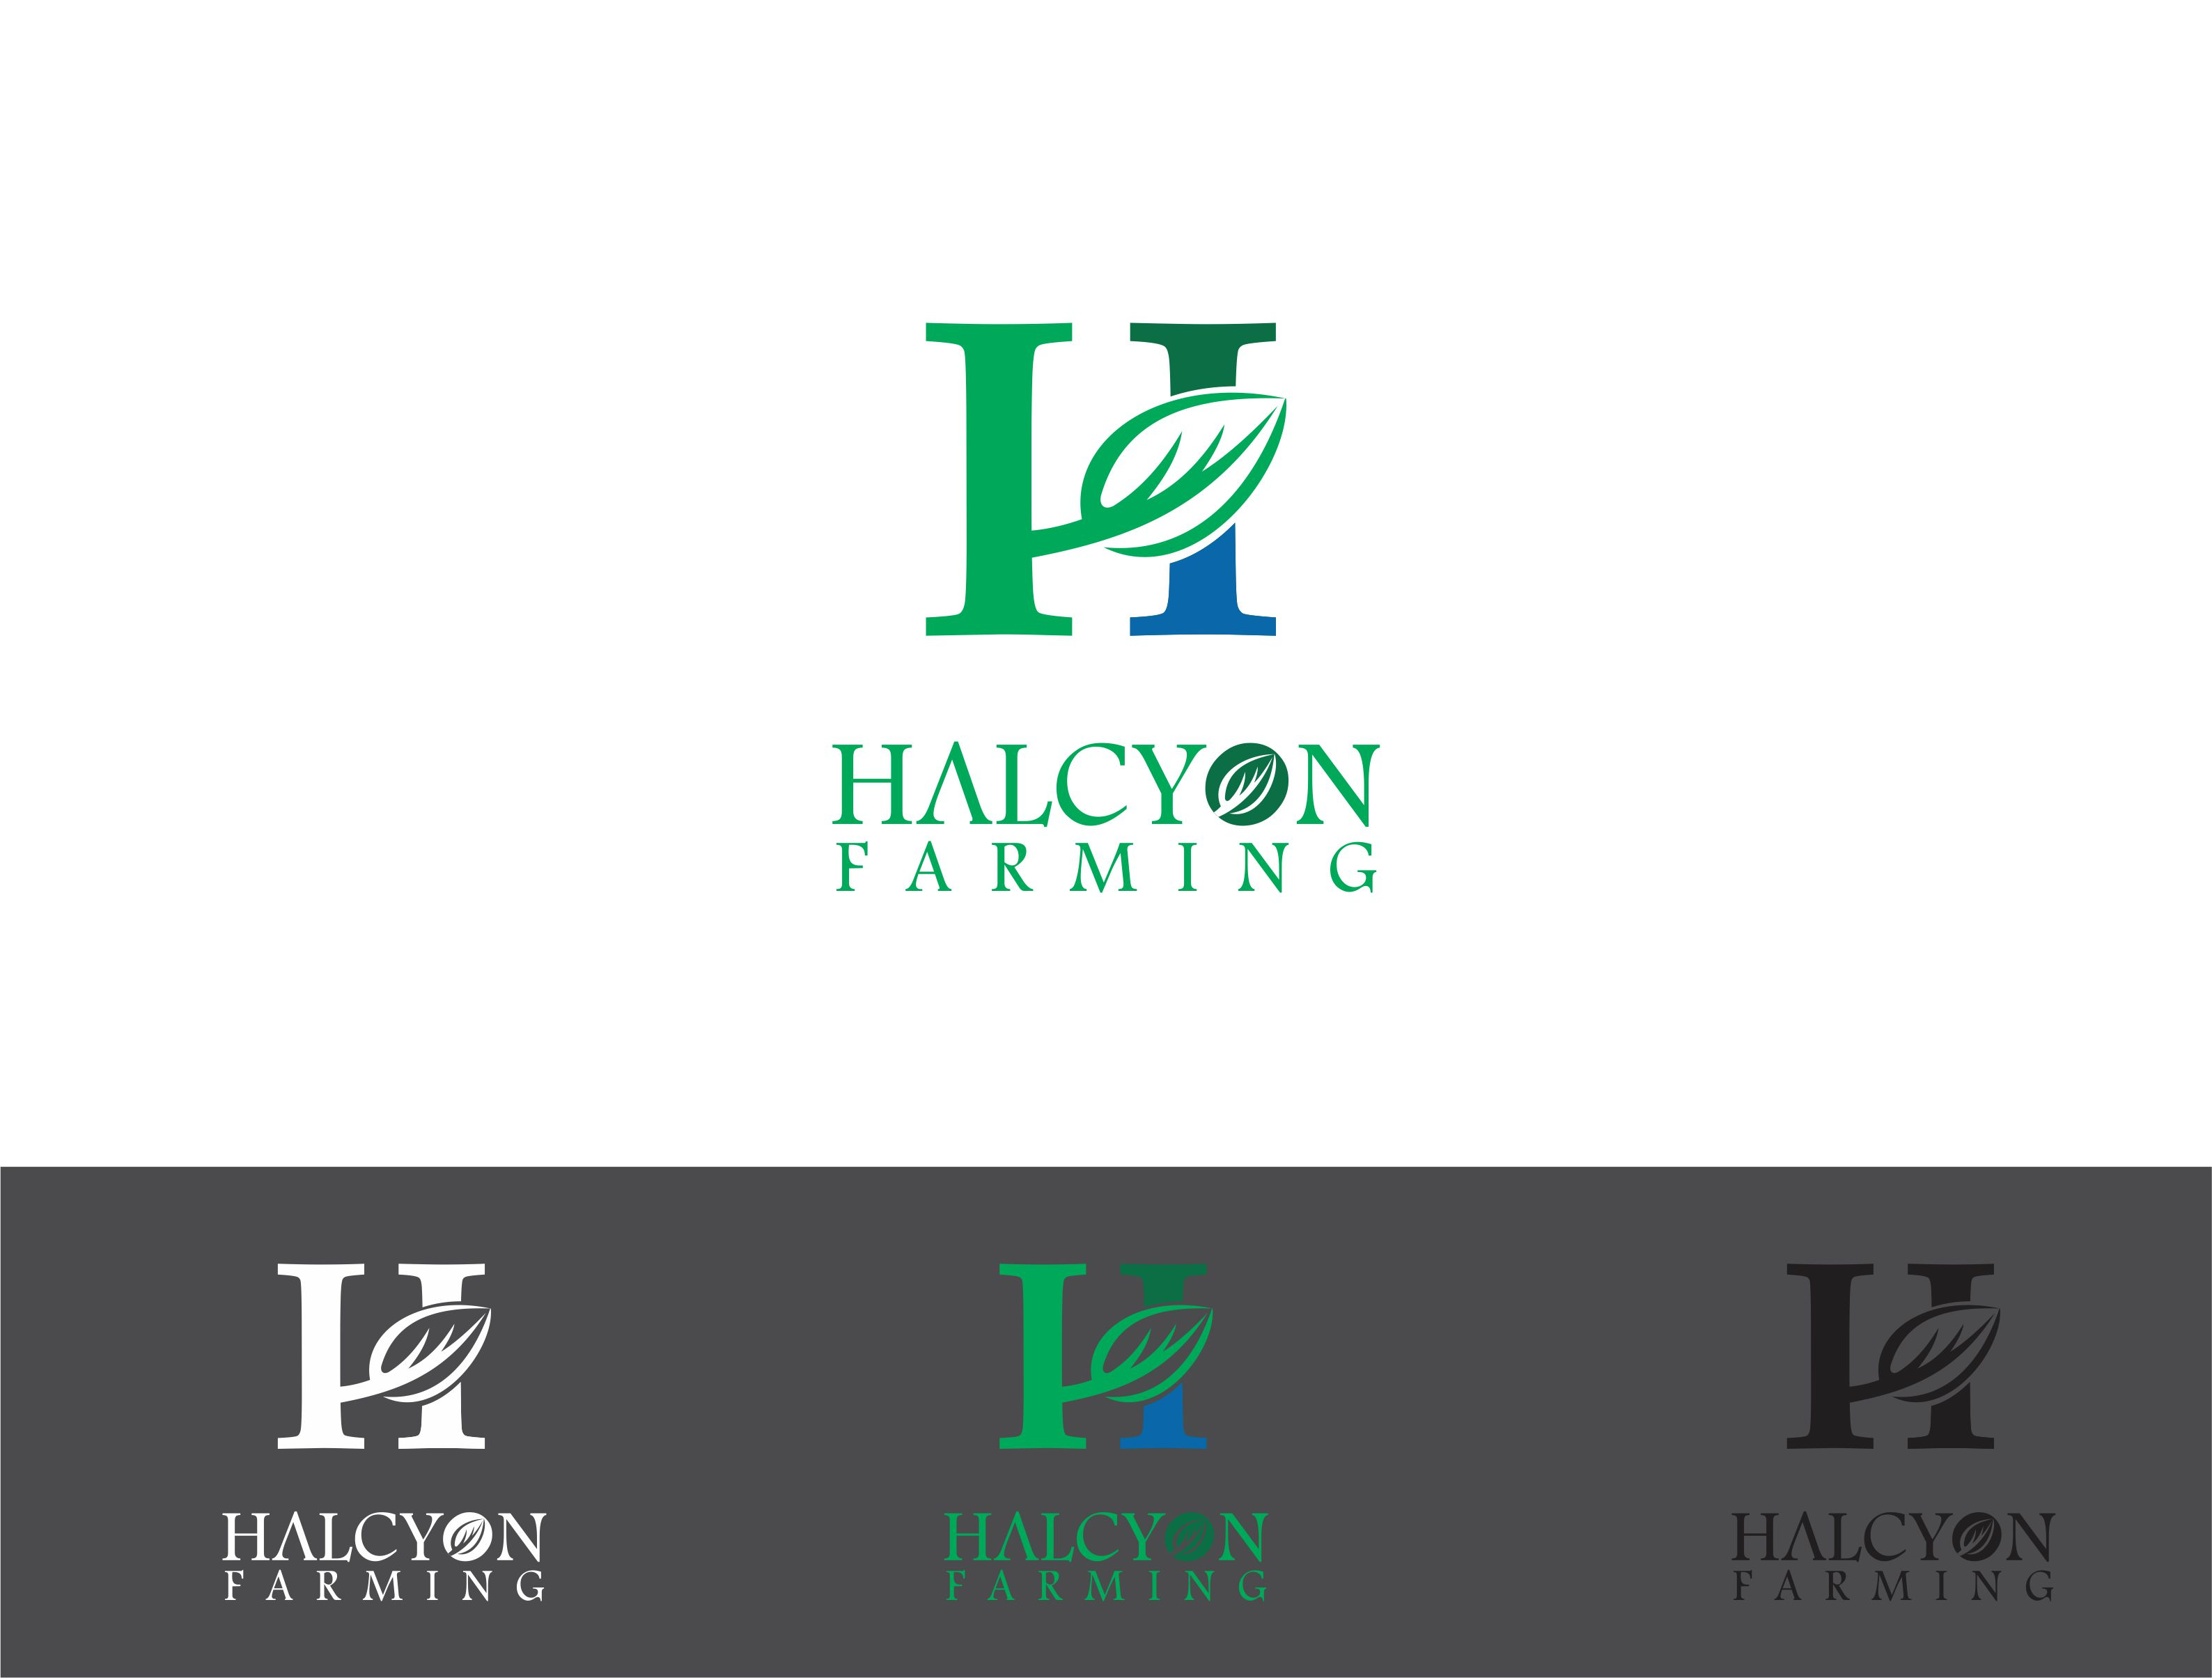 Logo Design by Dian Jatmiko - Entry No. 30 in the Logo Design Contest Creative Logo Design for Halcyon Farming.